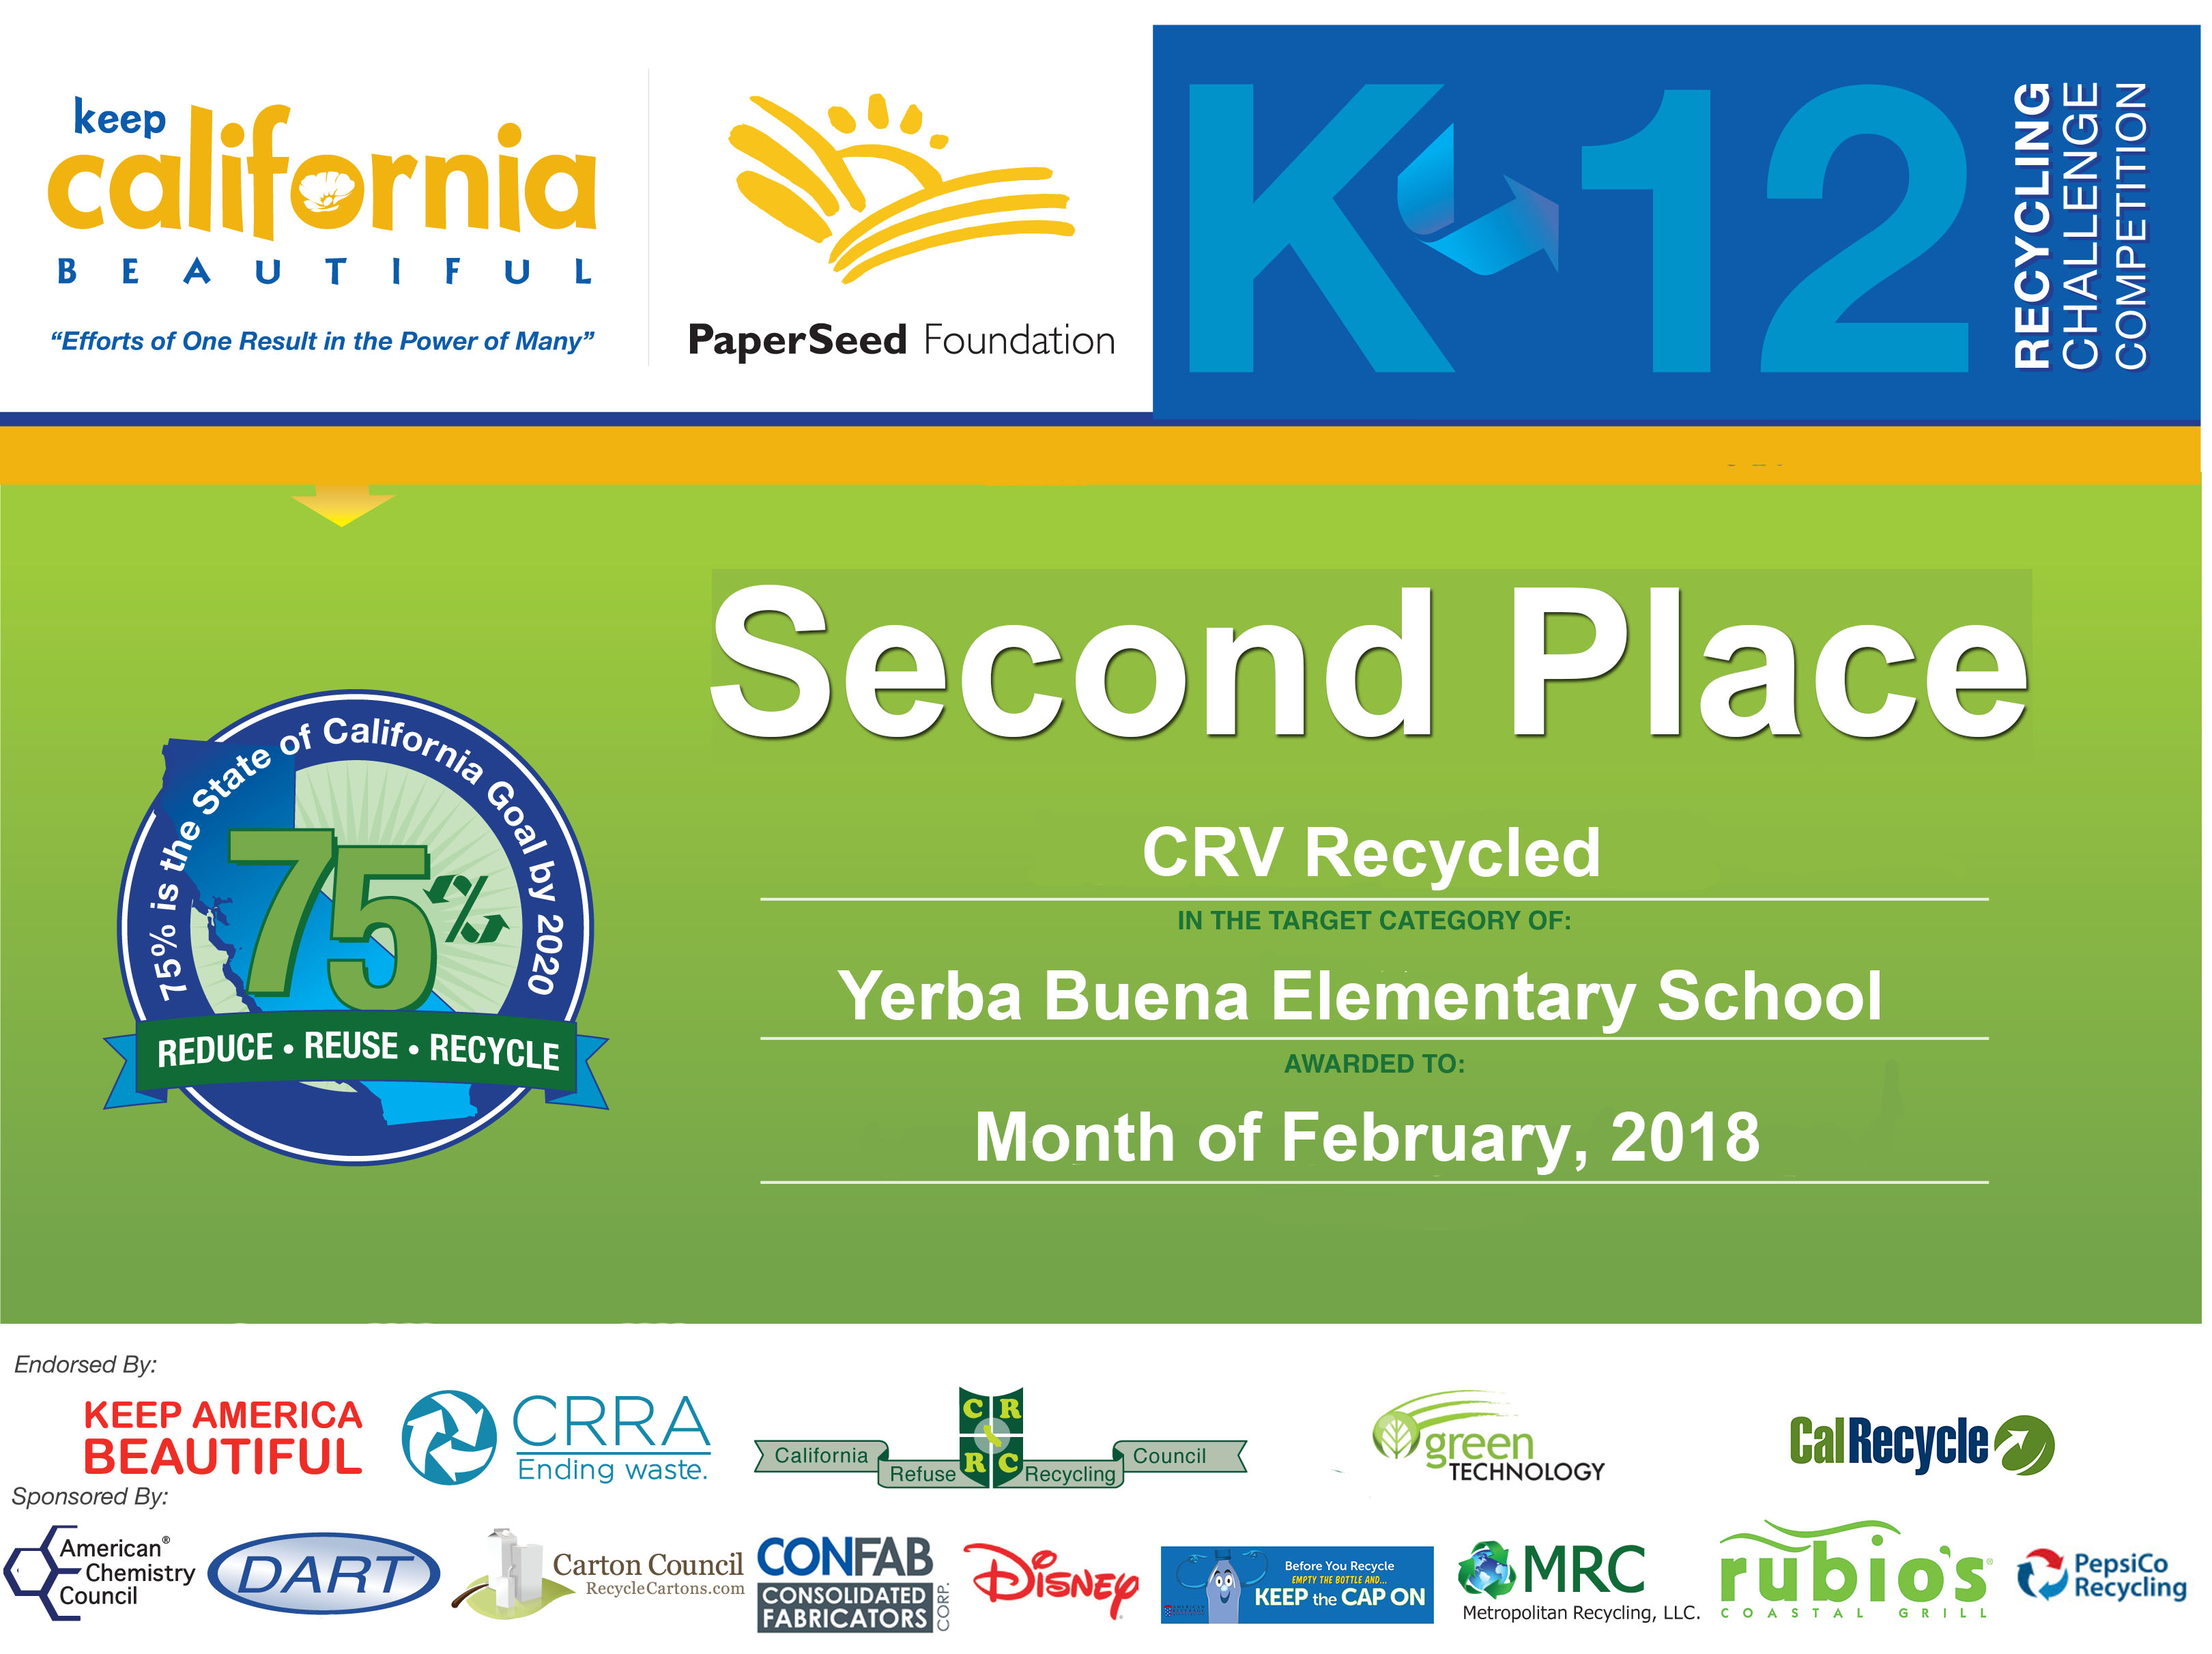 Yerba Buena Elementary School- CRV Recycled 2018-2nd Place